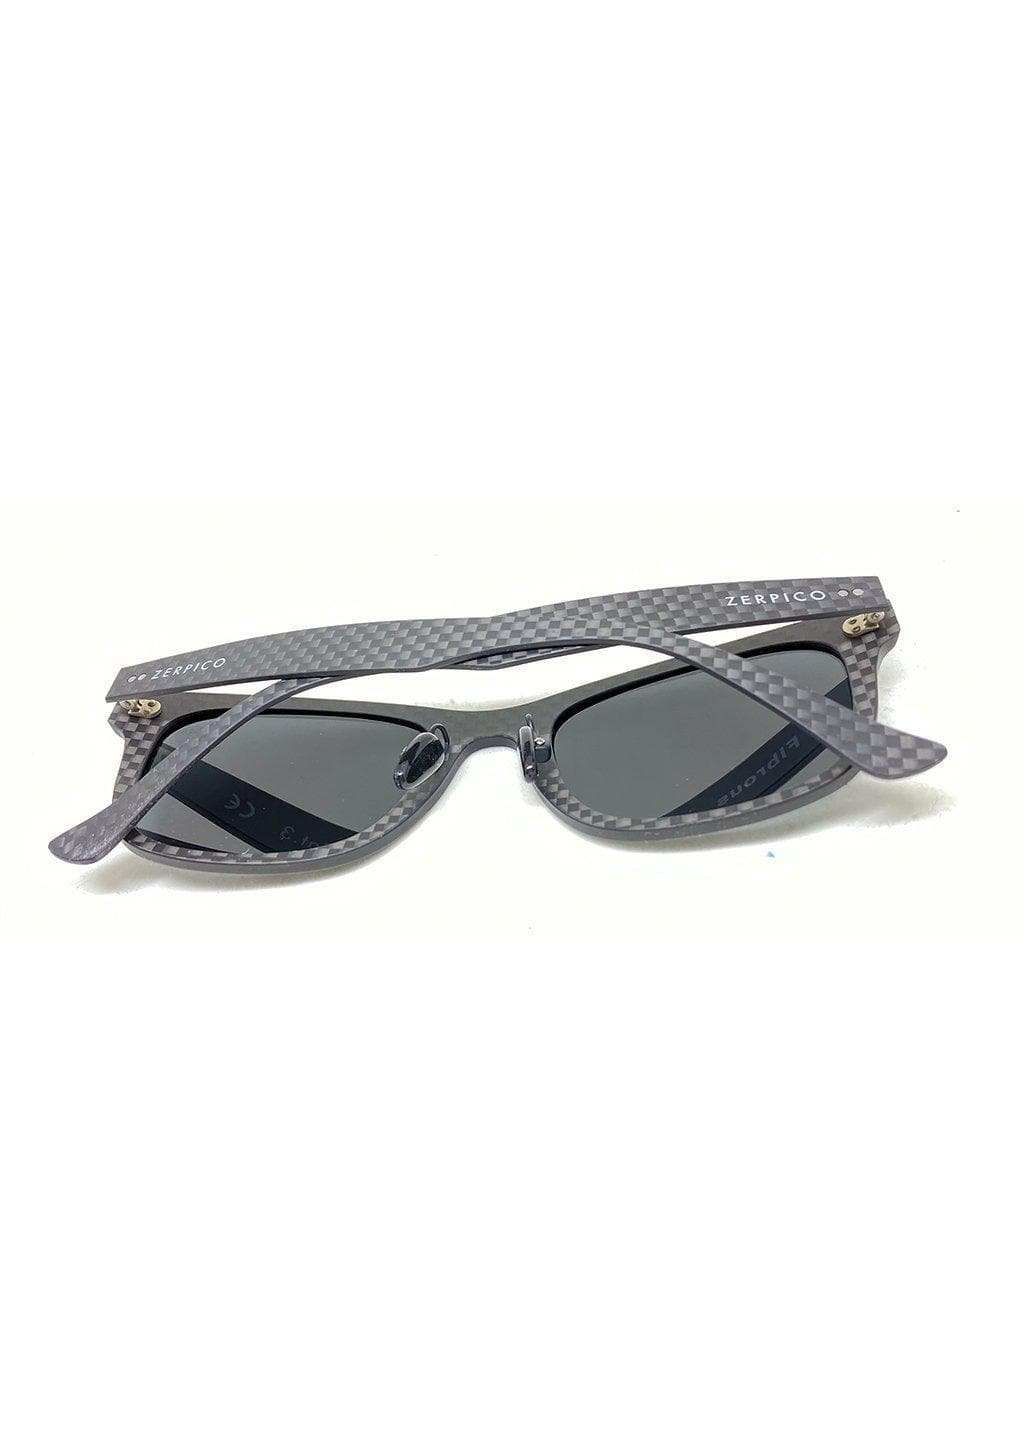 Our carbon fiber sunglasses with details taken in studio.